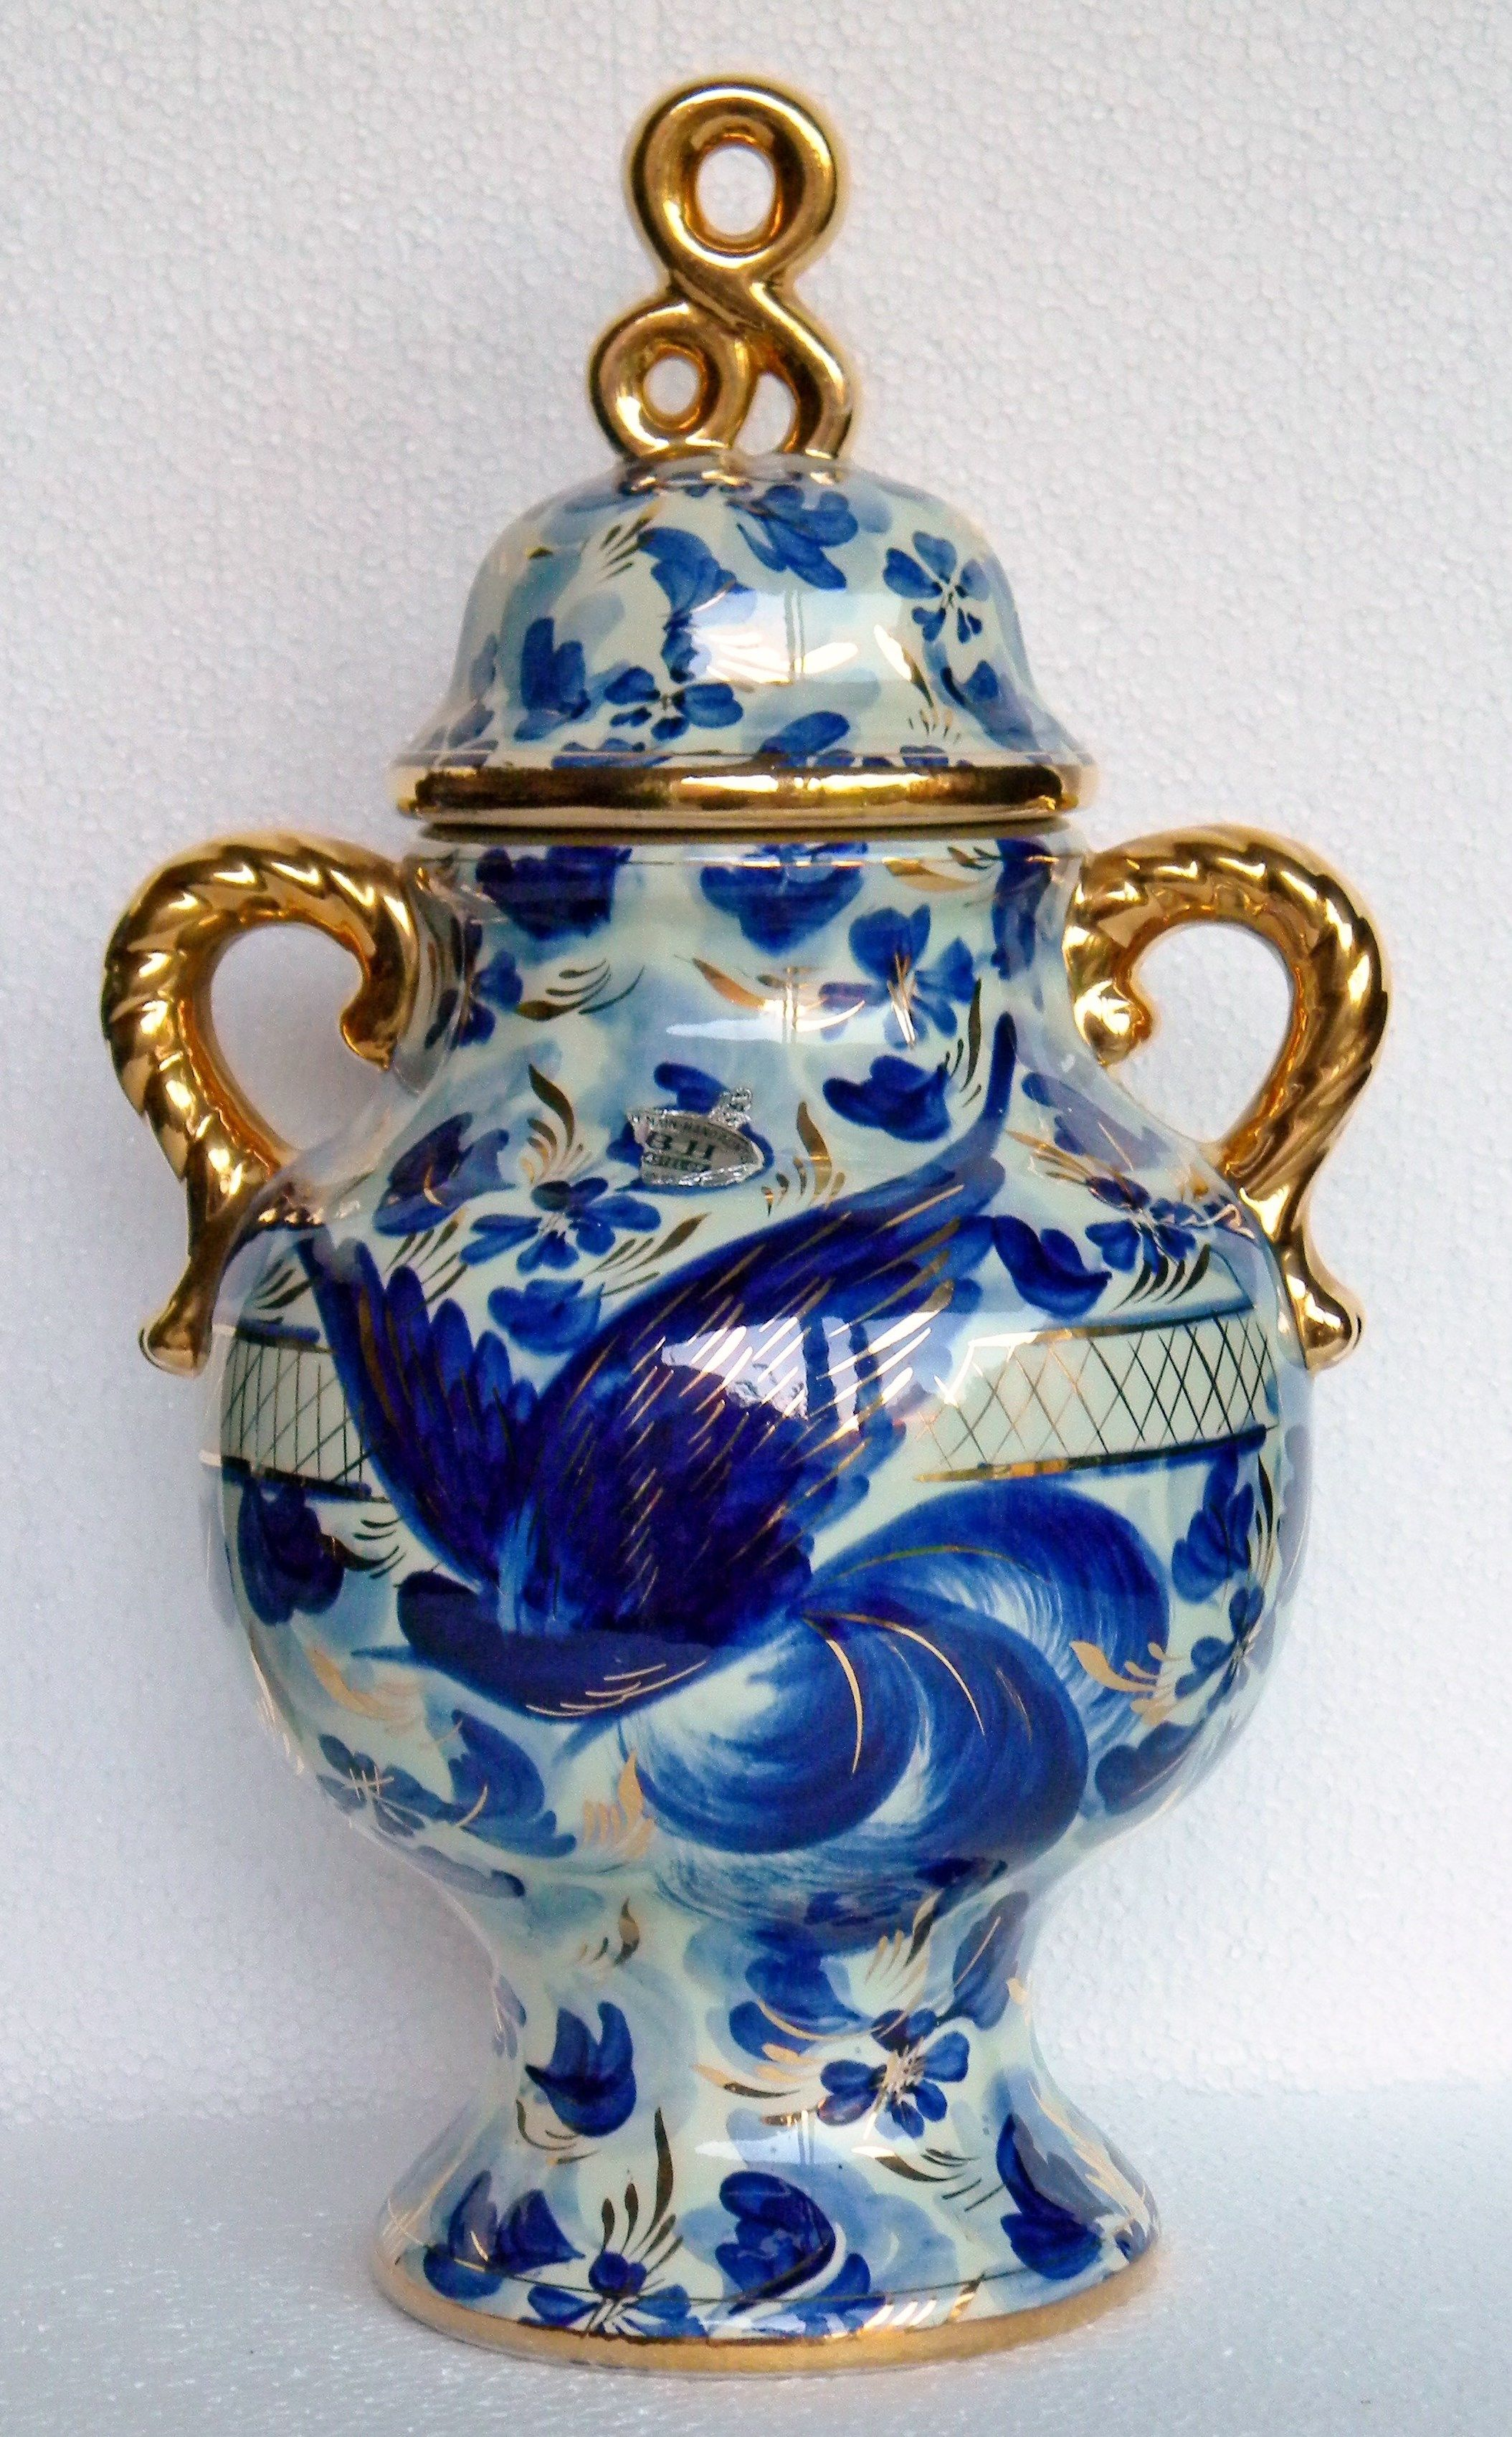 An extravagant blue white and gold hand painted vase vintage an extravagant blue white and gold hand painted vase vintage dating from 1950s reviewsmspy